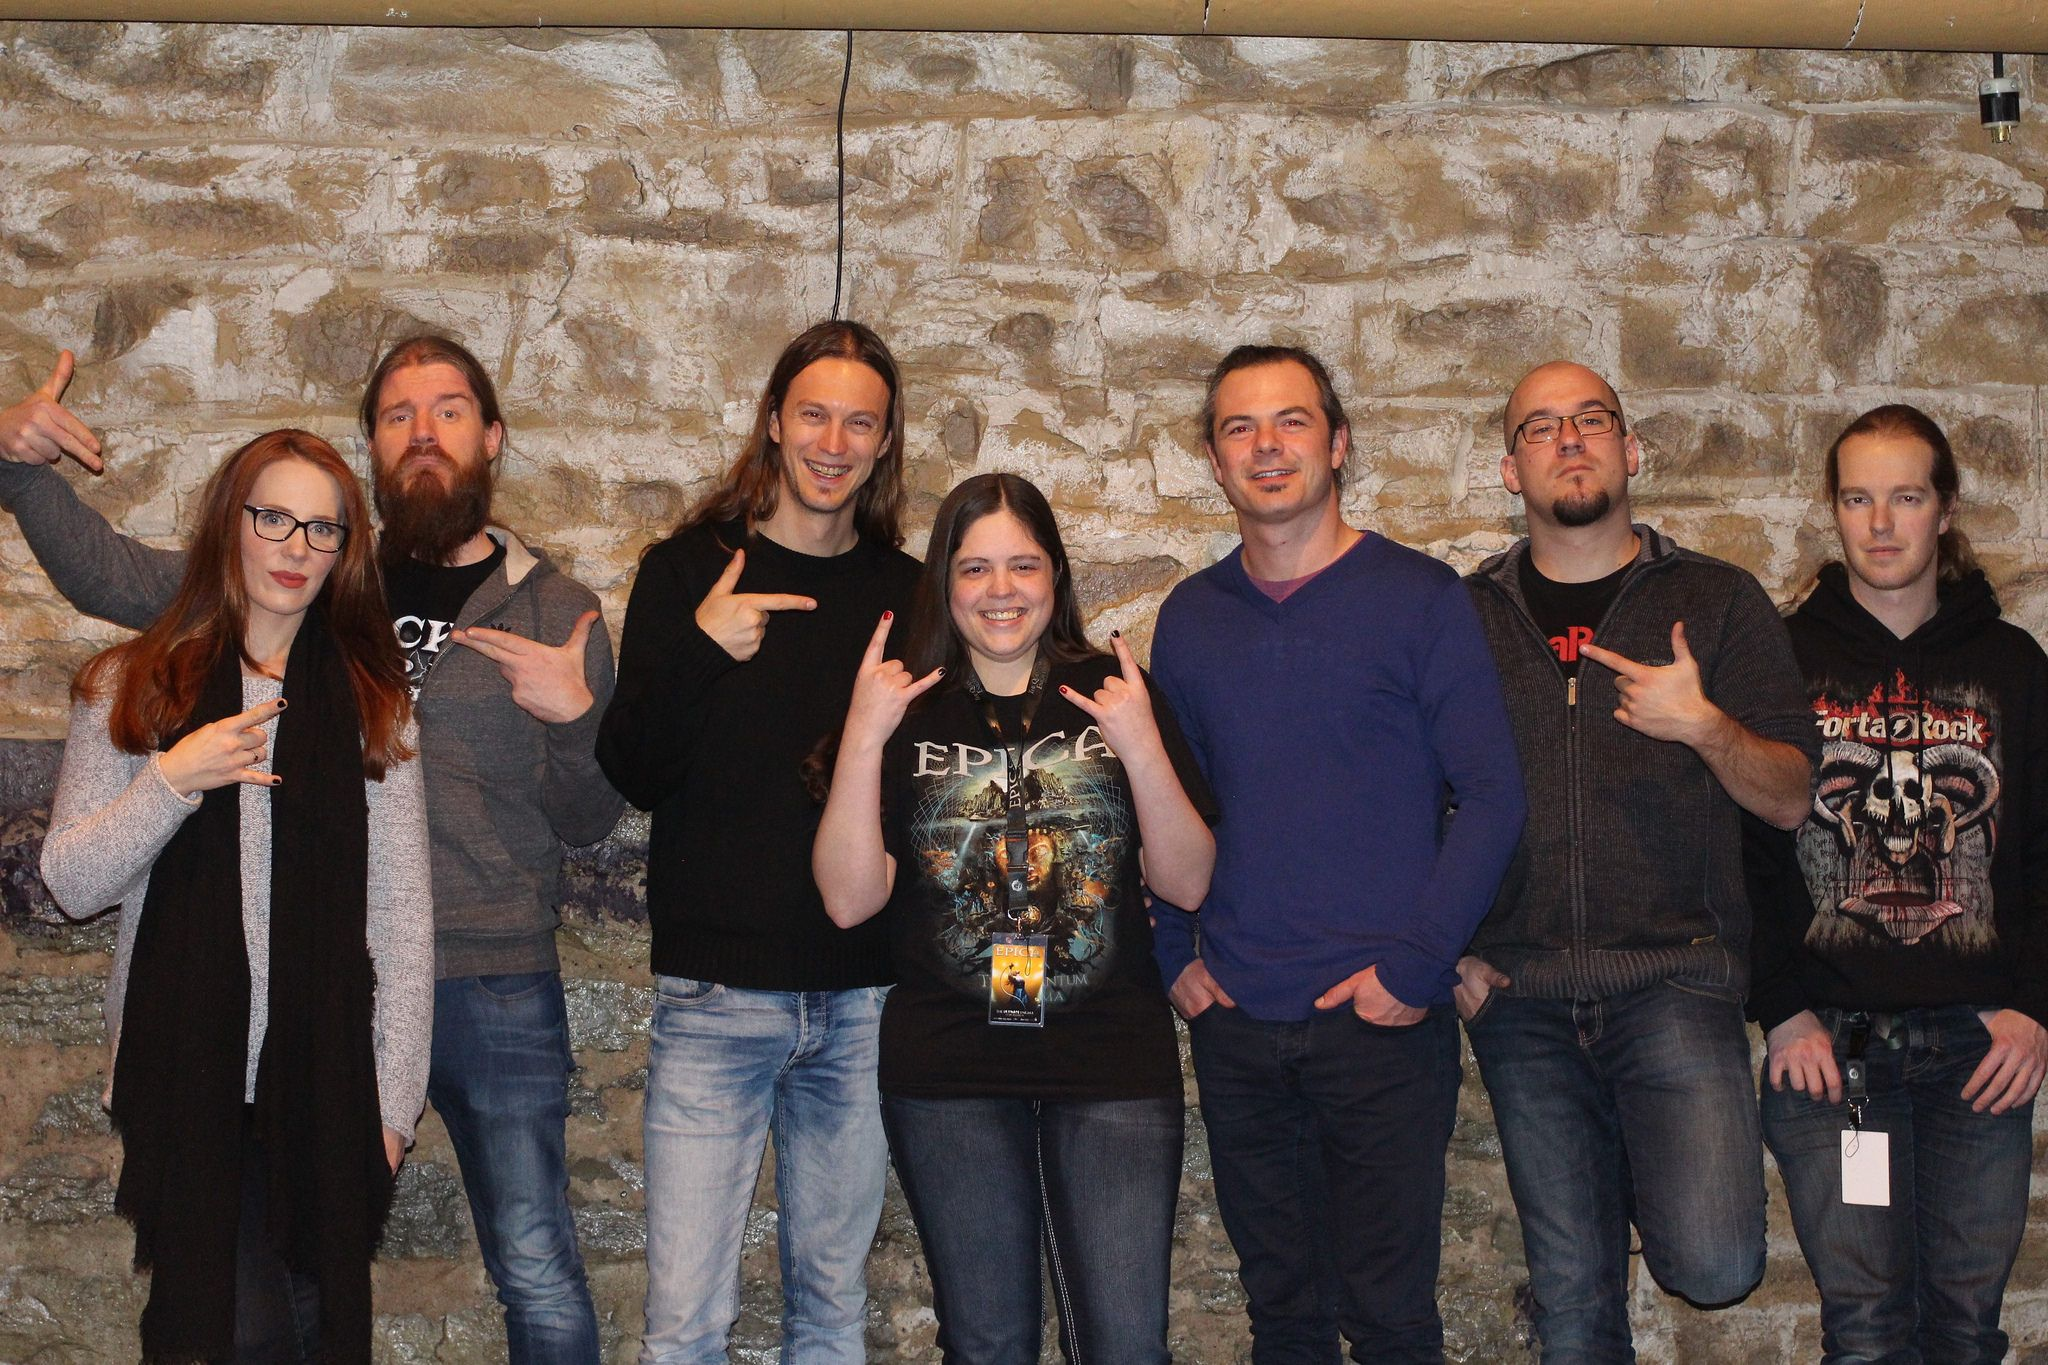 Me and Epica at the VIP Meet and Greet before the show on January 28th, 2016.